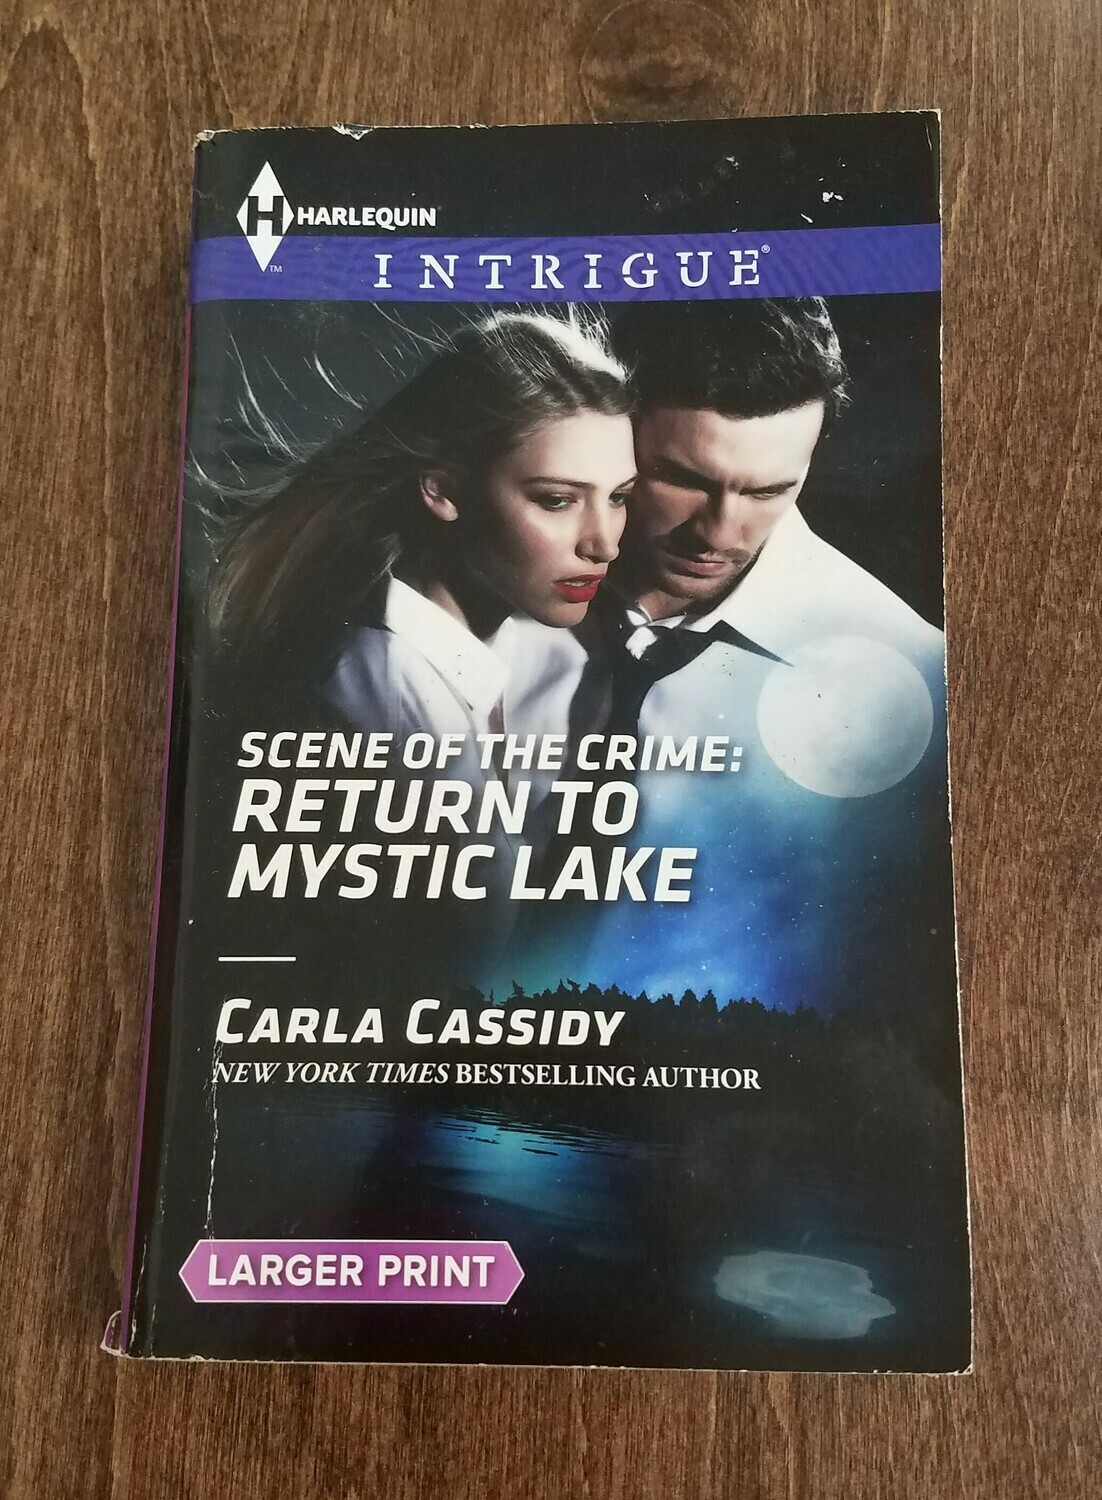 Scene of the Crime: Return to Mystic Lake by Carla Cassidy